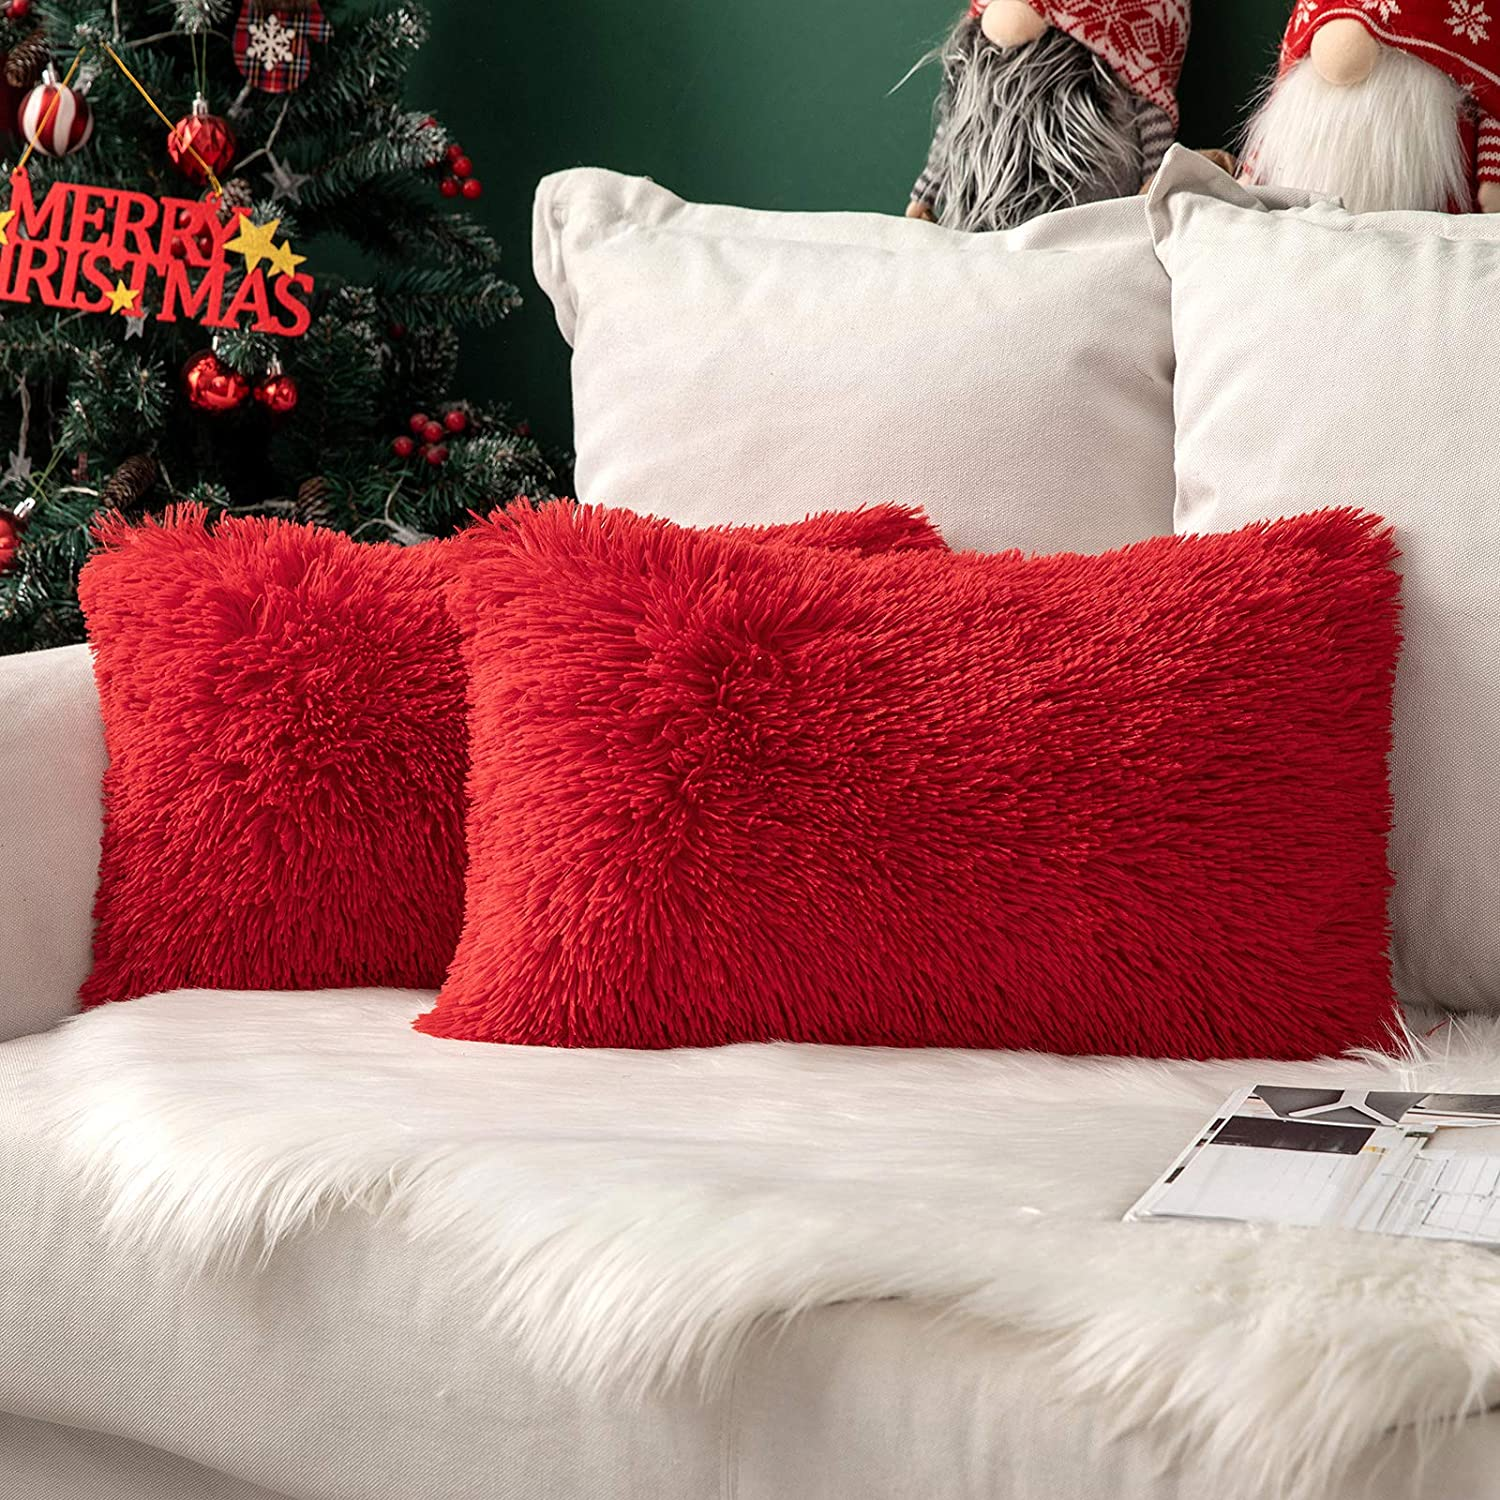 MIULEE Pack of 2 Christmas Decoration Luxury Faux Fur Throw Pillow Cover Deluxe Decorative Plush Pillow Case Cushion Cover Shell for Sofa Bedroom Car 12 x 20 Inch Red